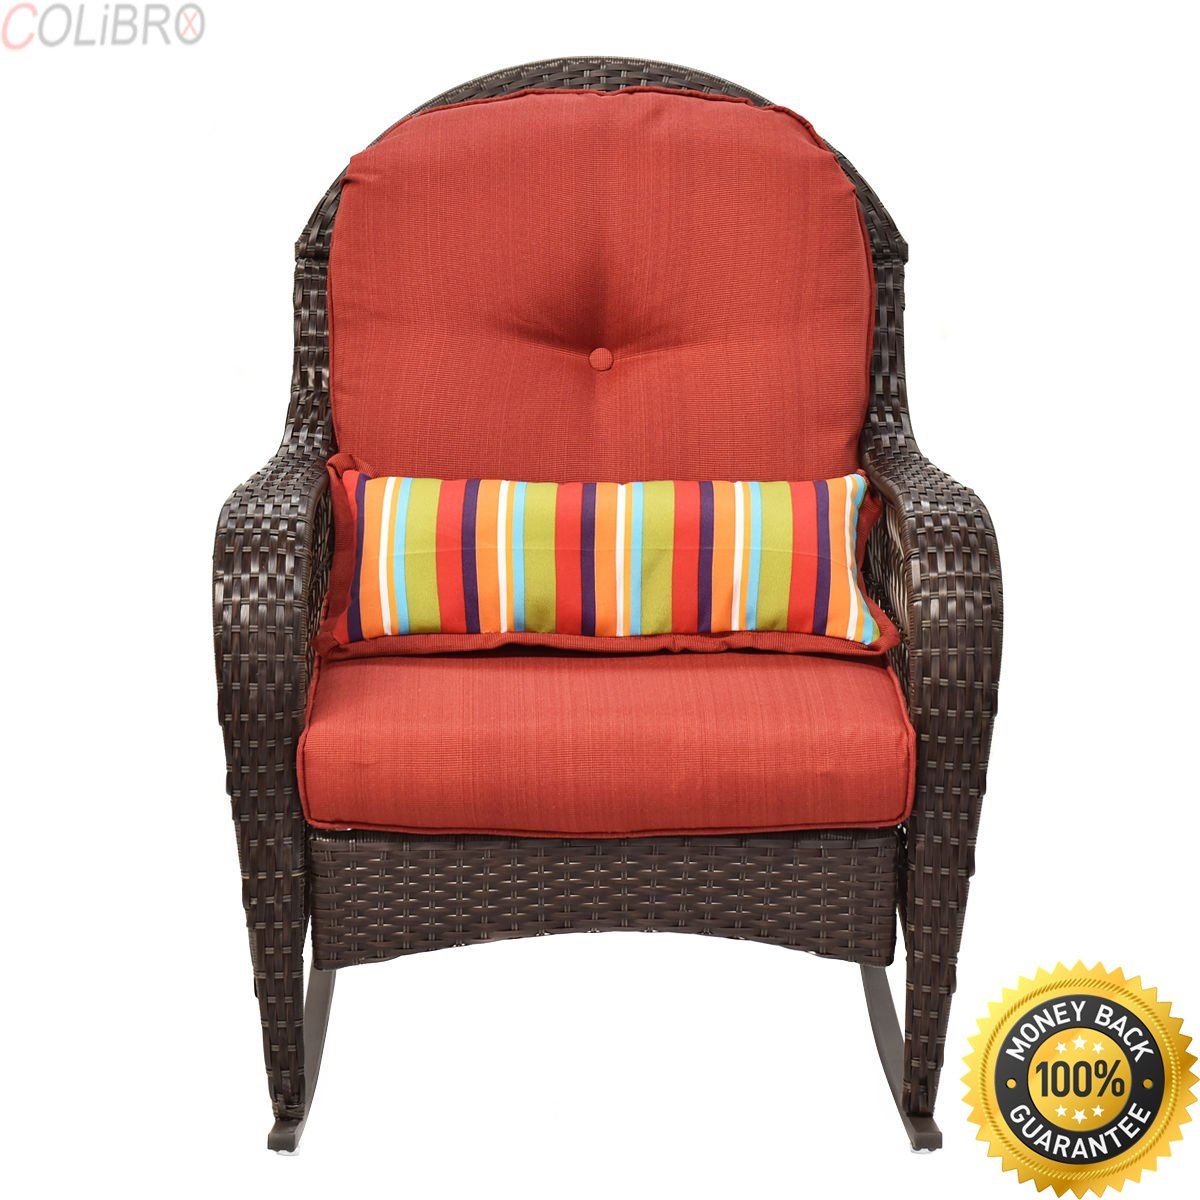 COLIBROX--Outdoor Wicker Rocking Chair Porch Deck Rocker Patio Furniture w/ Cushion New Diensday All-weather Wicker Chair.